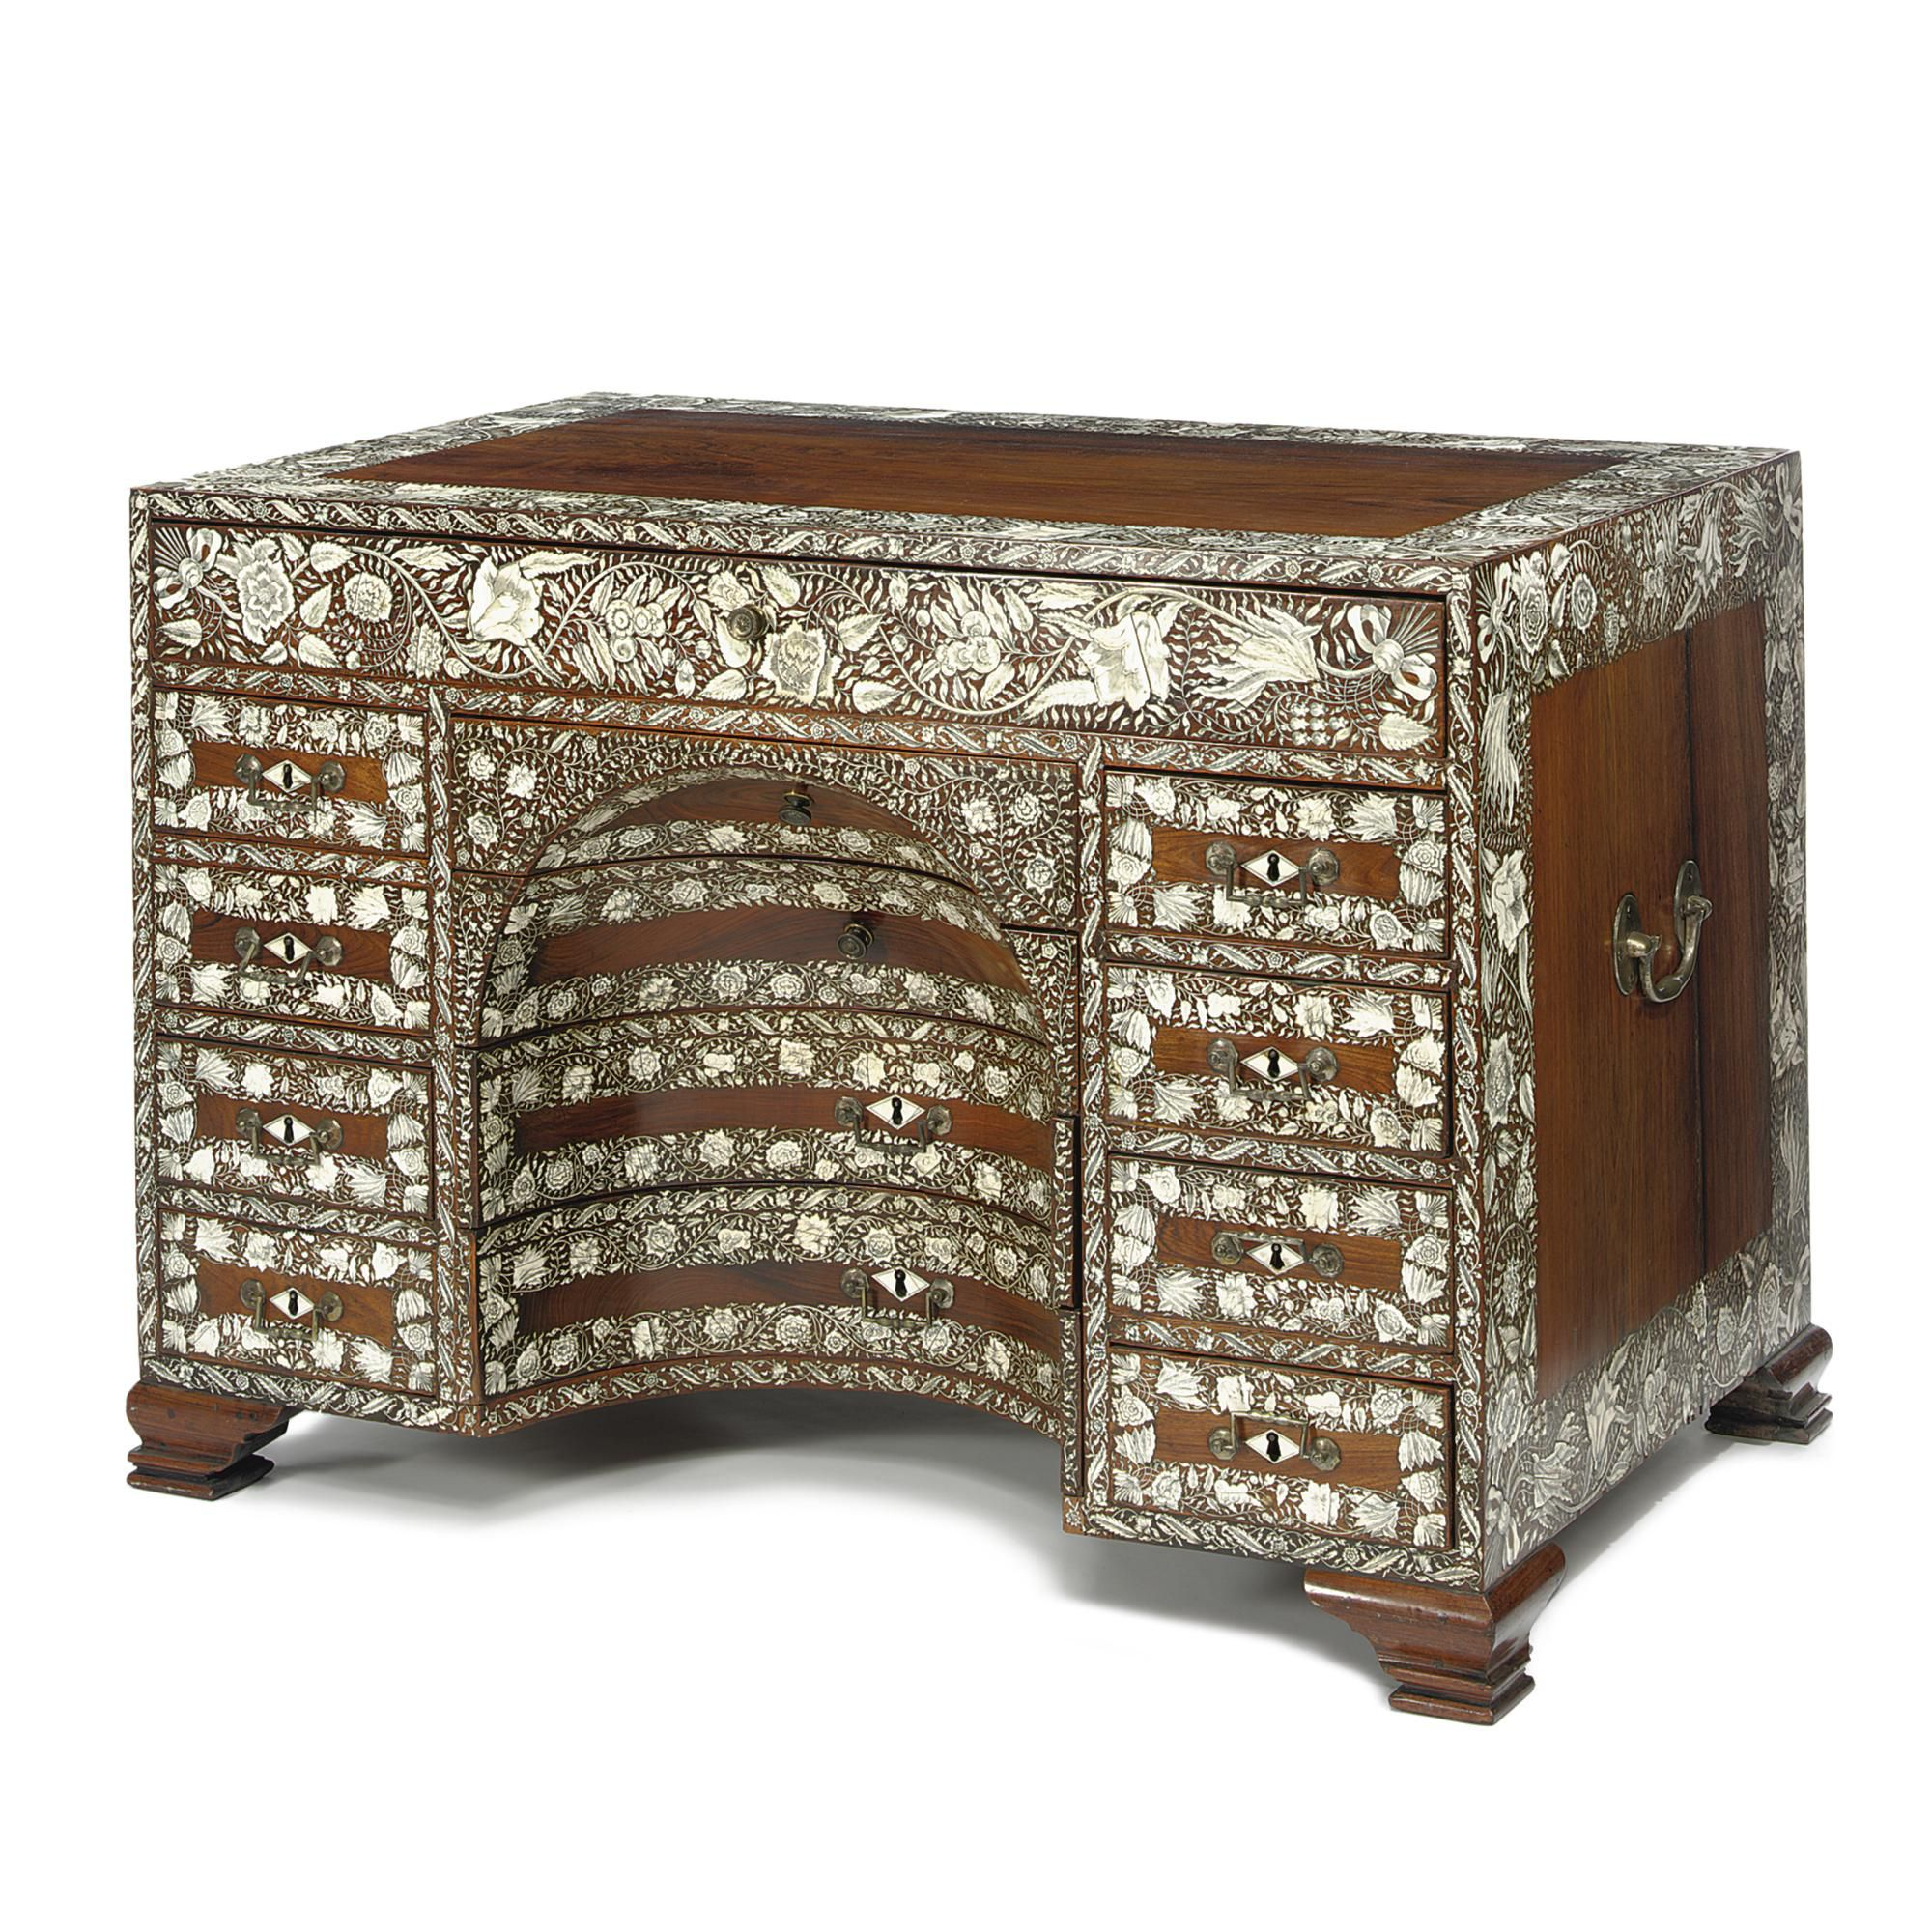 Muebles De La India A Highly Important Ivory Inlaid Rosewood Dressing Table